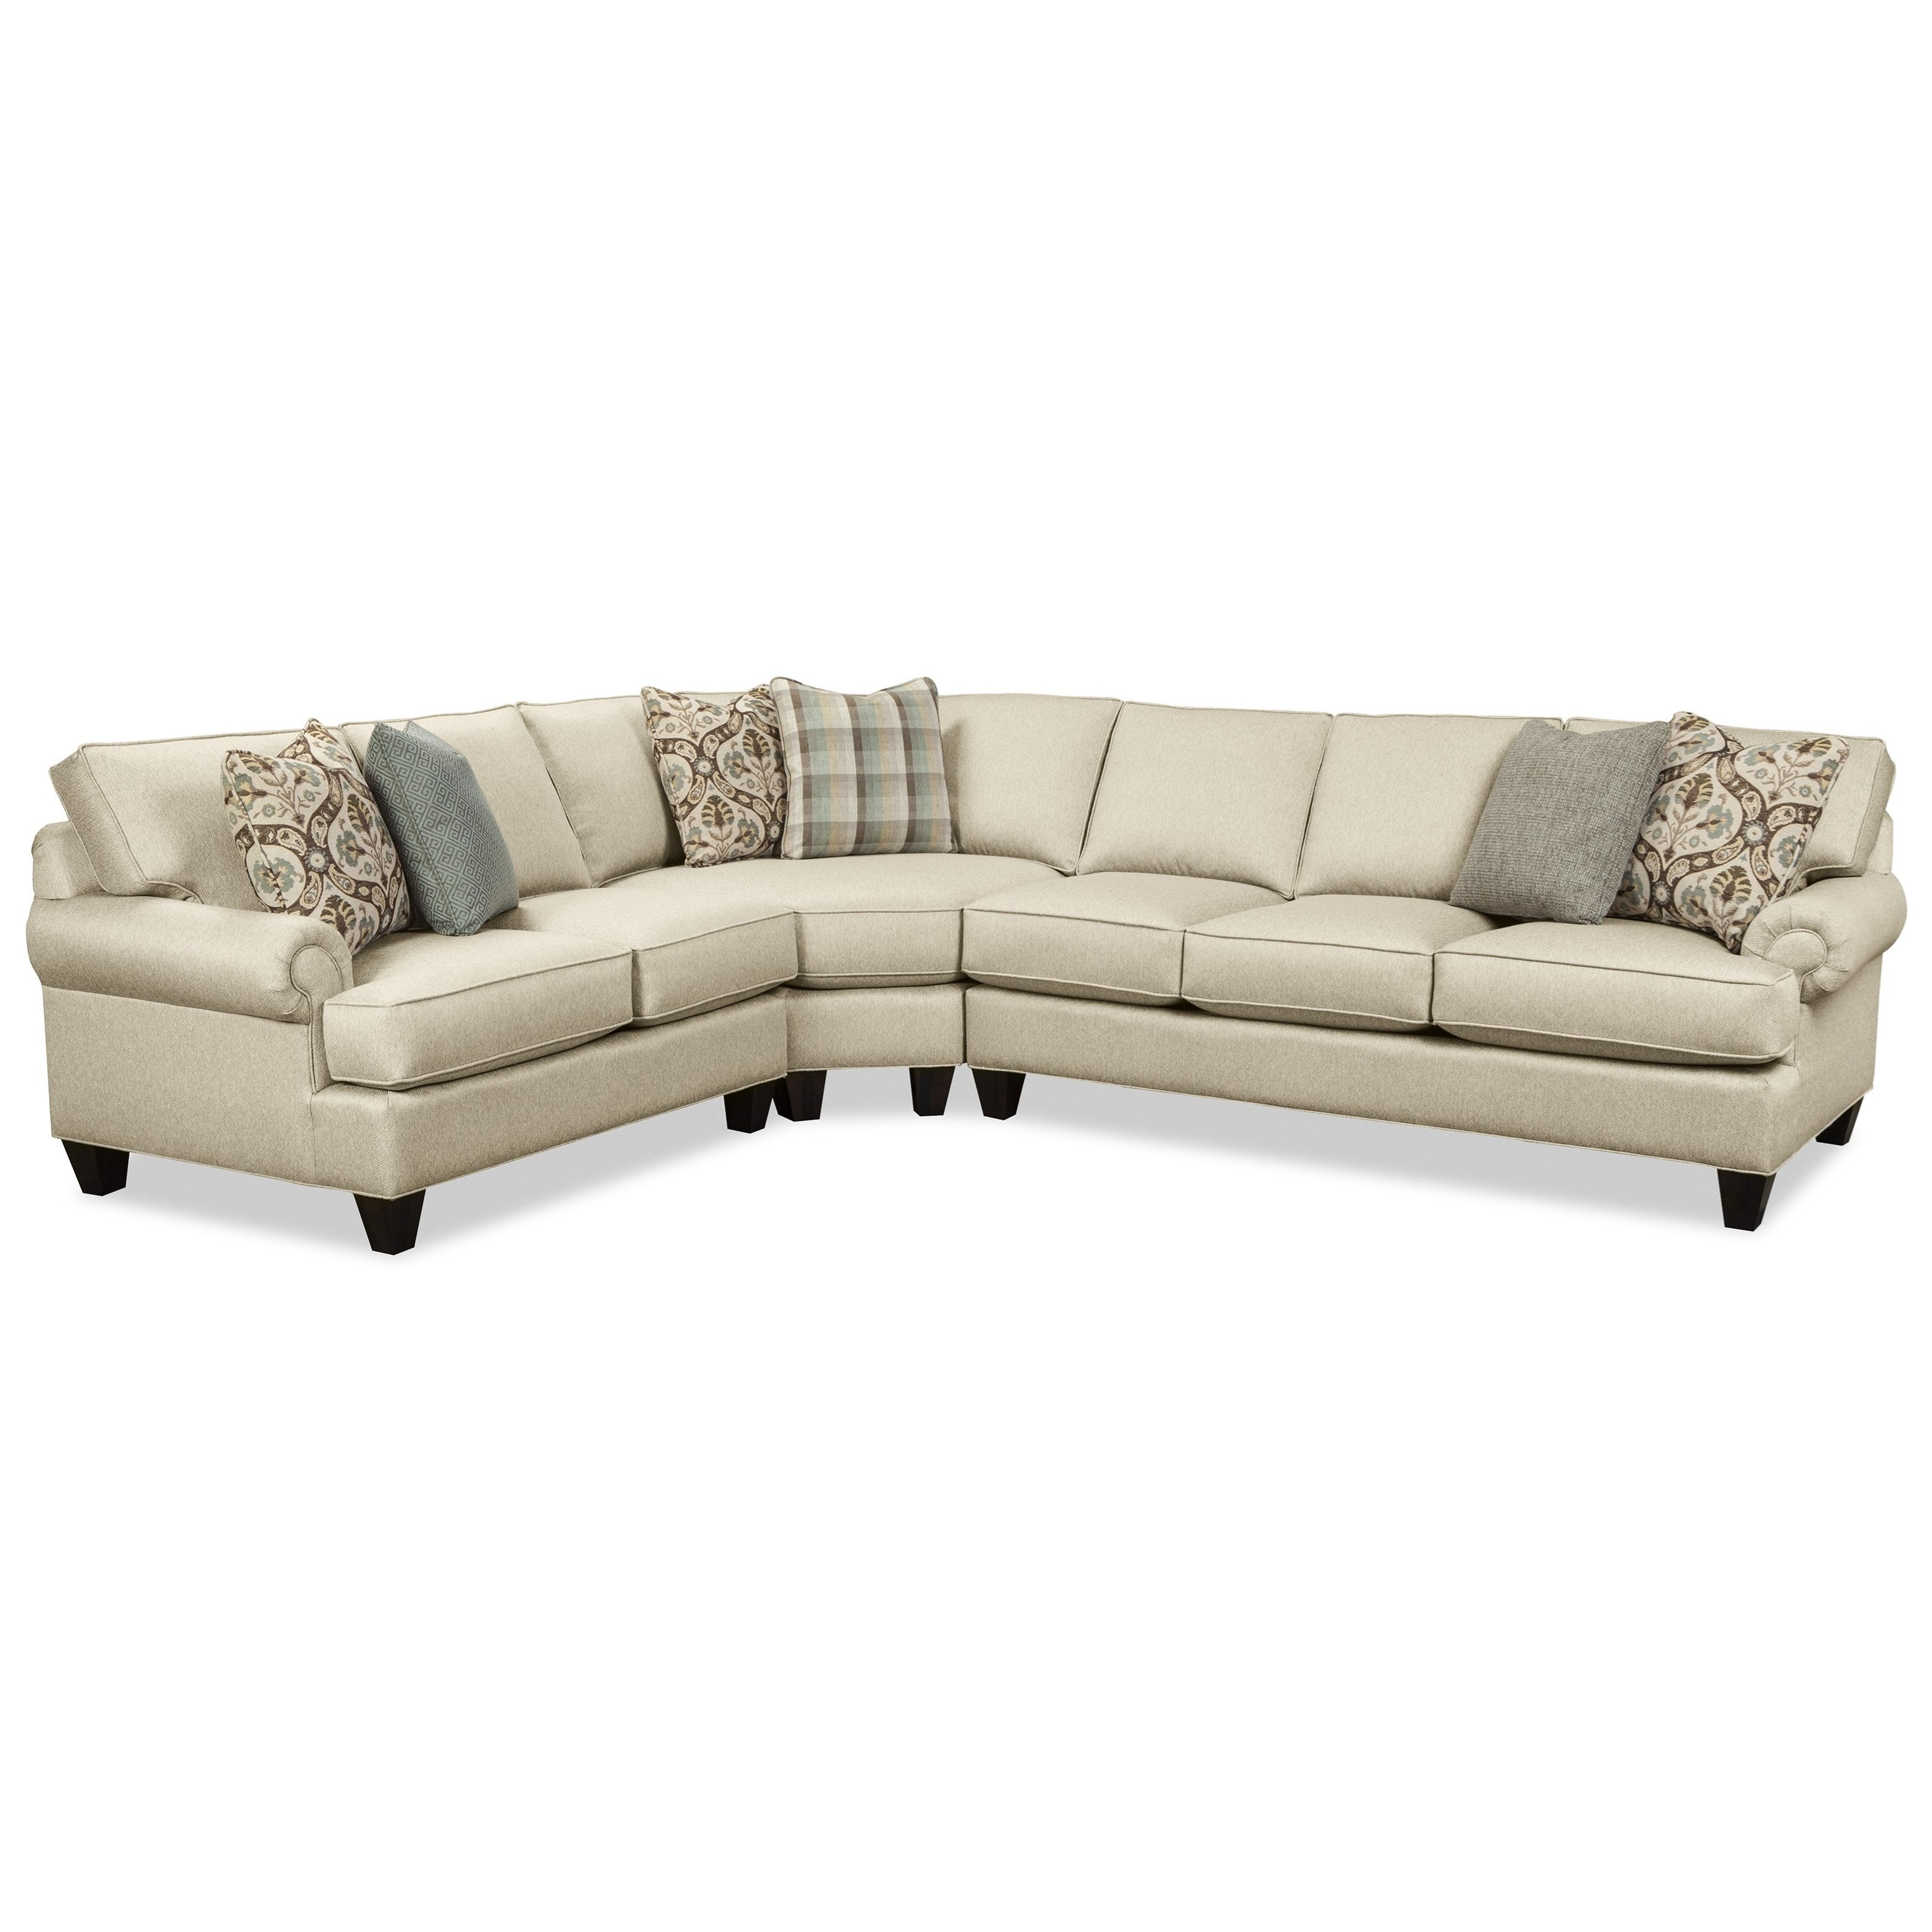 Hickory Craft C9 Custom Collection Customizable Three Piece For Adeline 3 Piece Sectionals (Image 11 of 25)